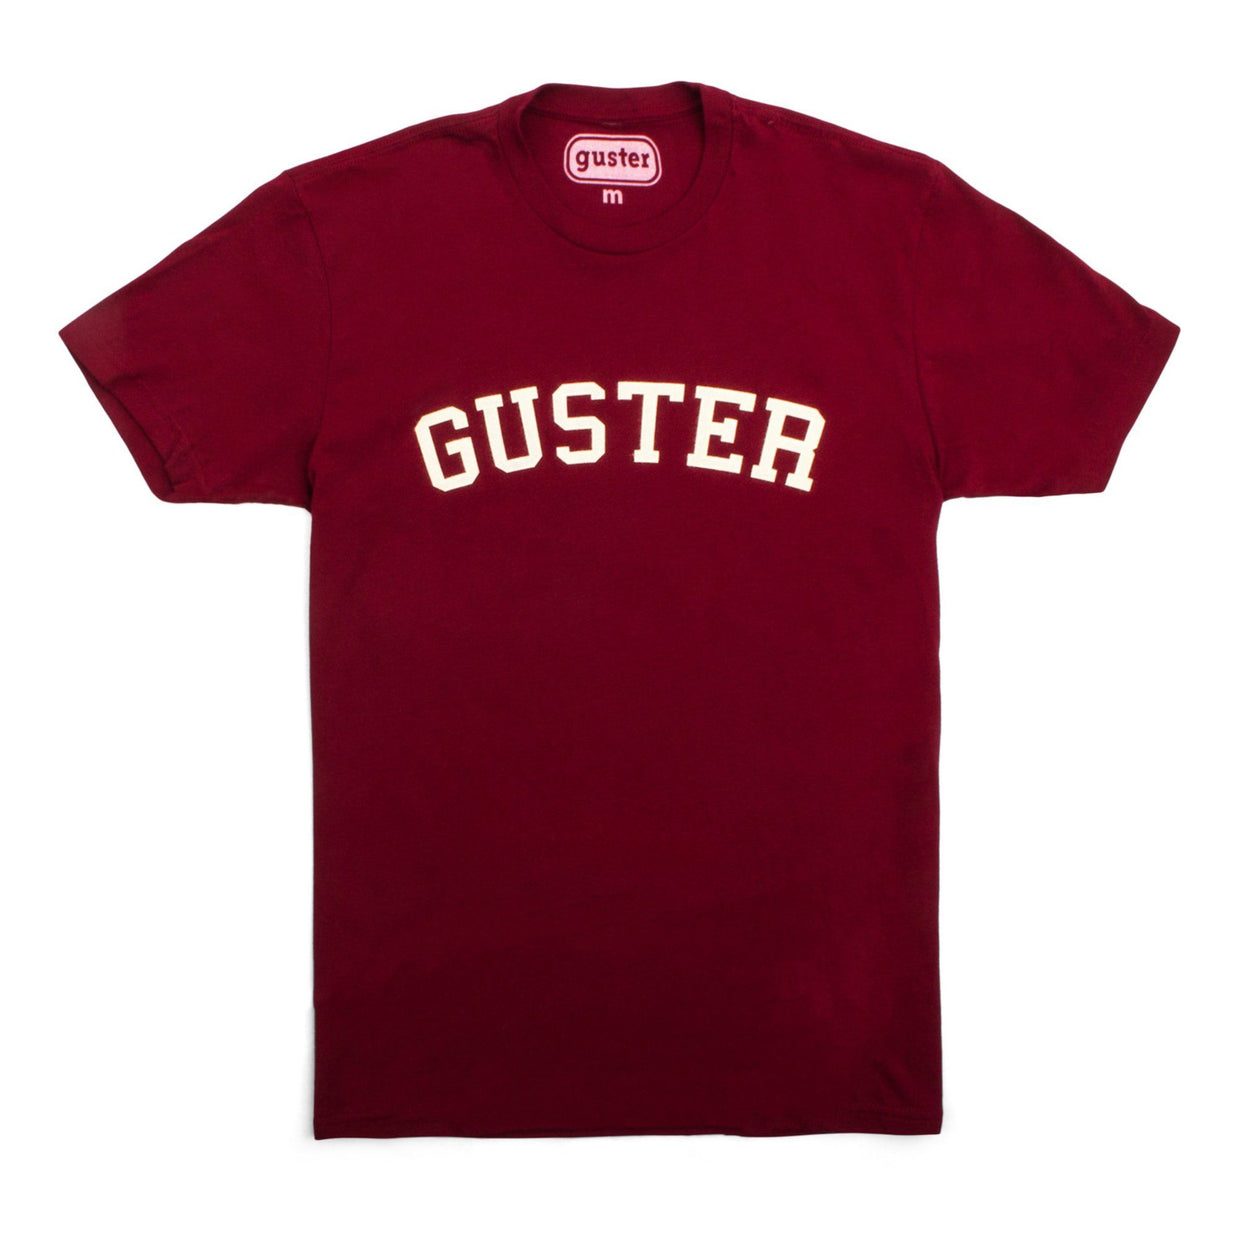 Guster Throwback Felt T-Shirt - Maroon